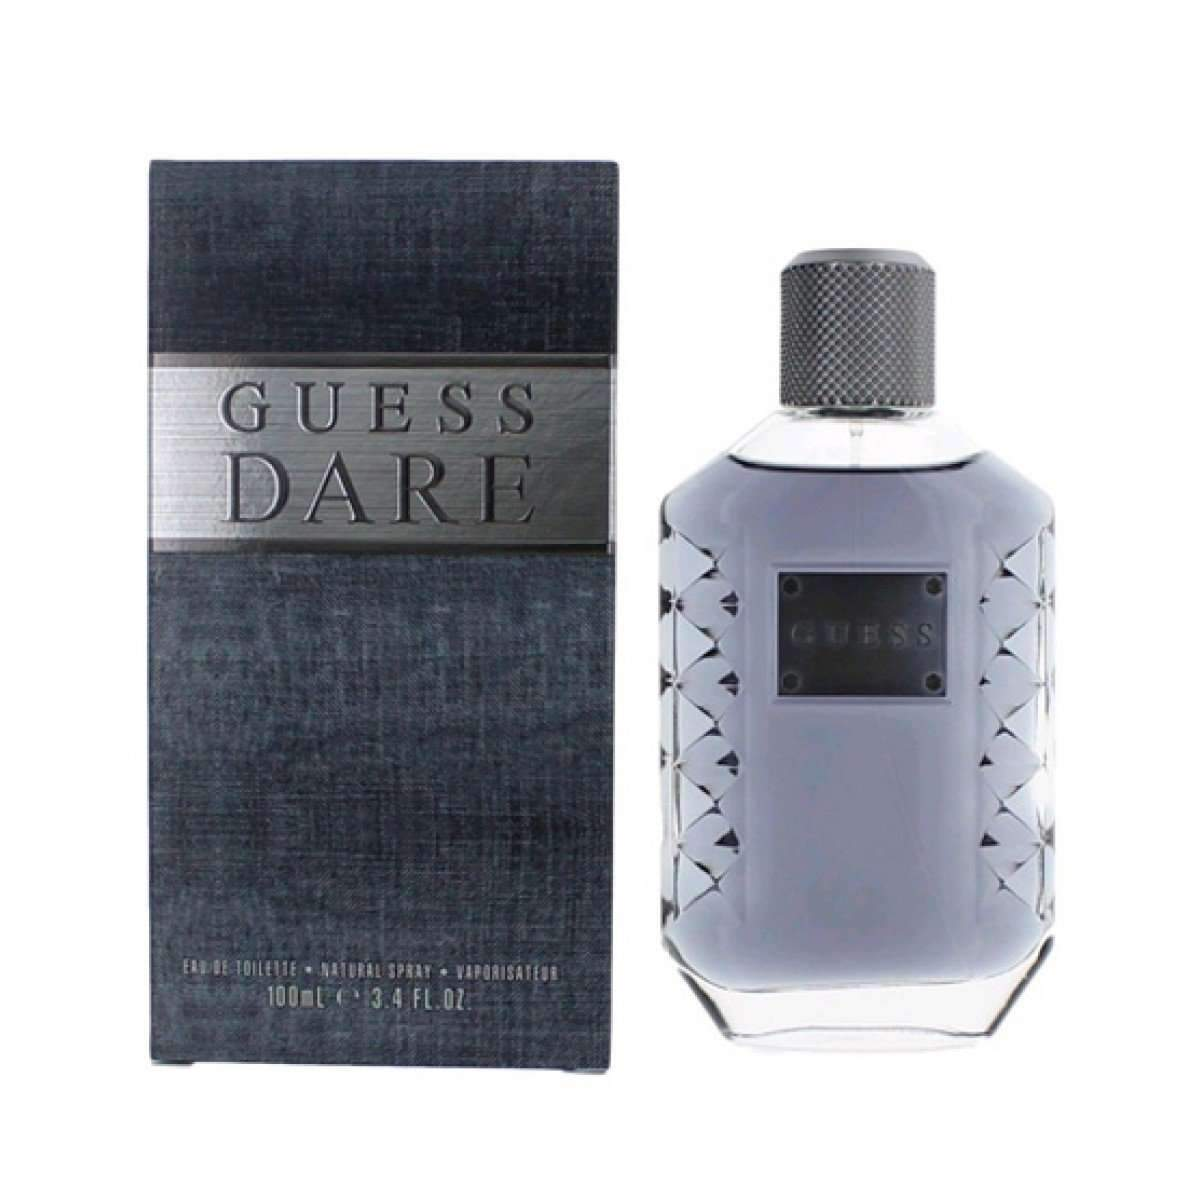 Guess Dare Cologne for Men